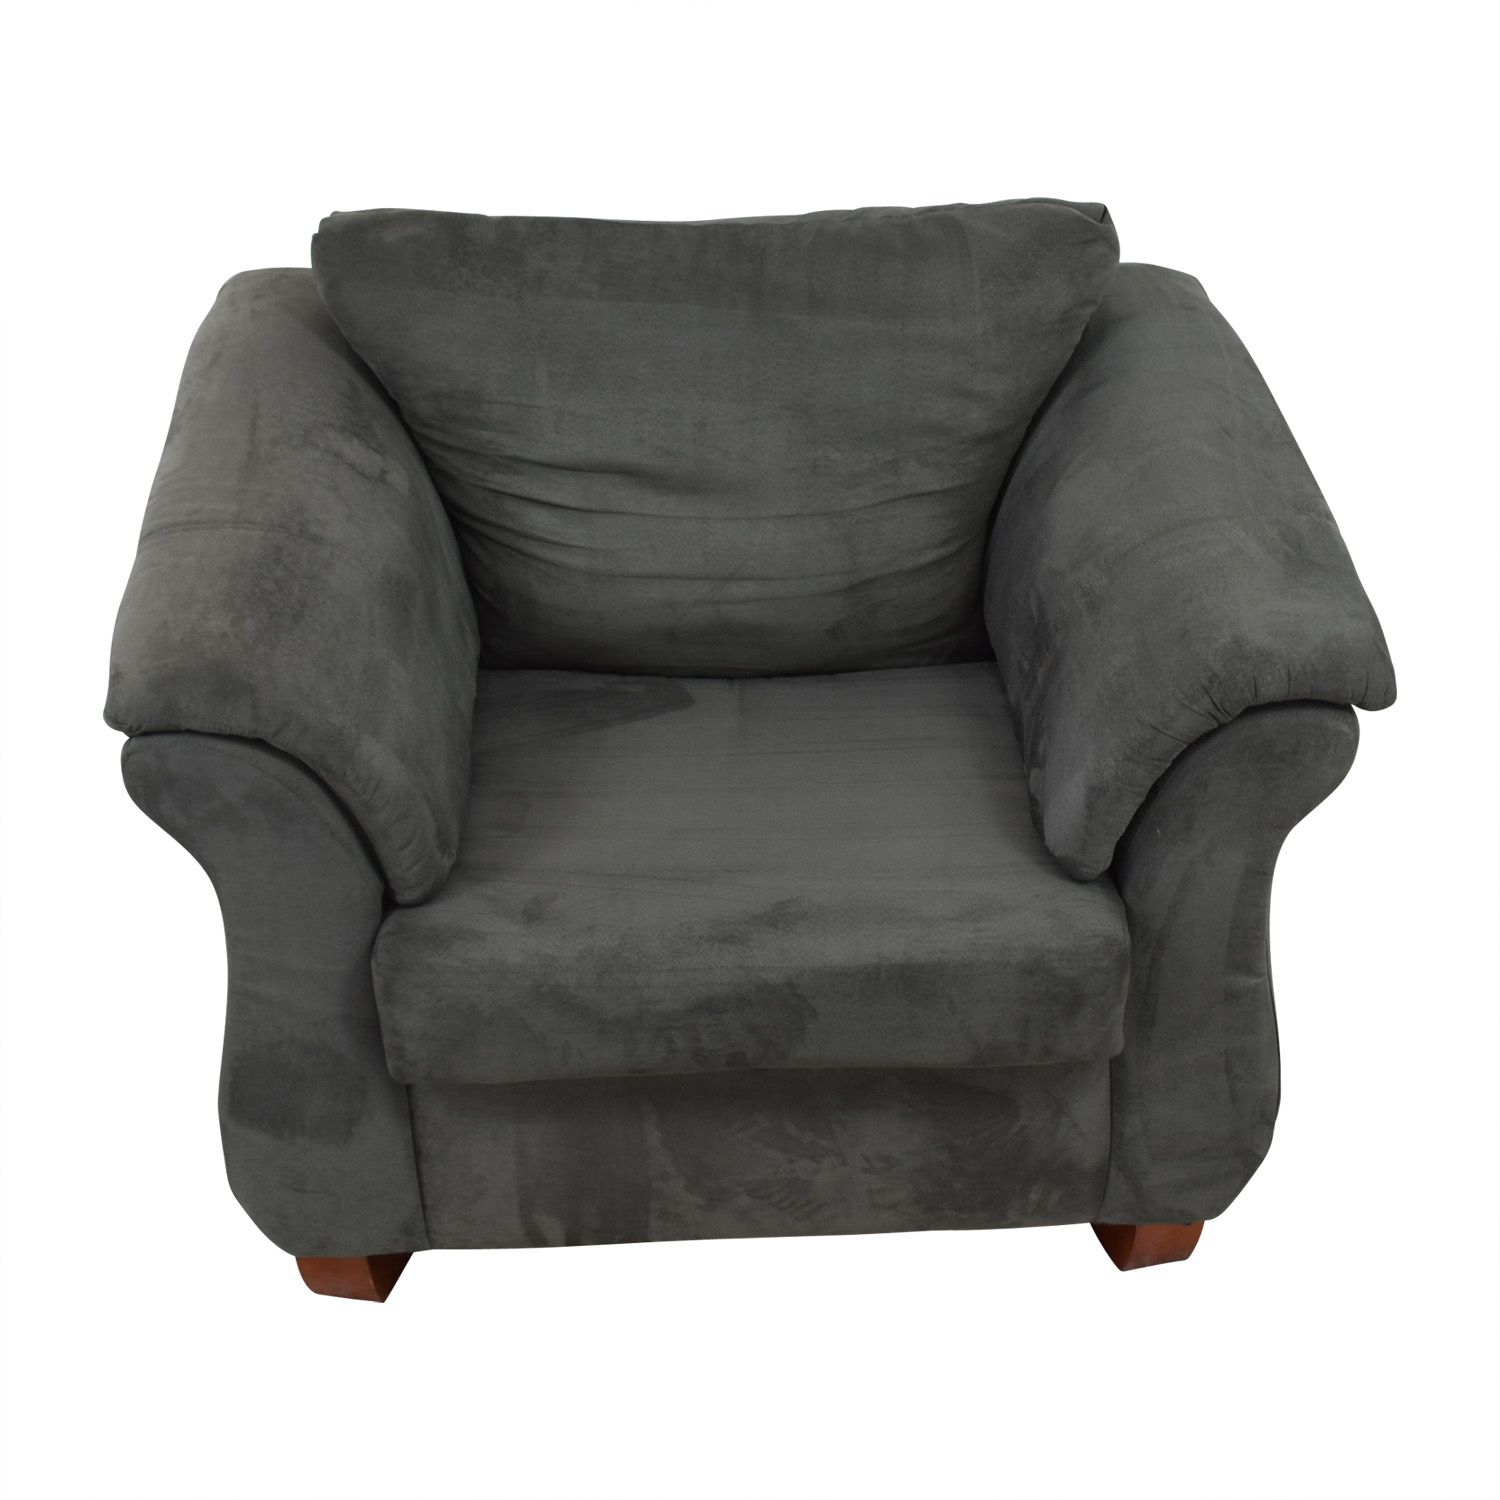 shop Value City Furniture Grey Loveseat Accent Chair Value City Furniture